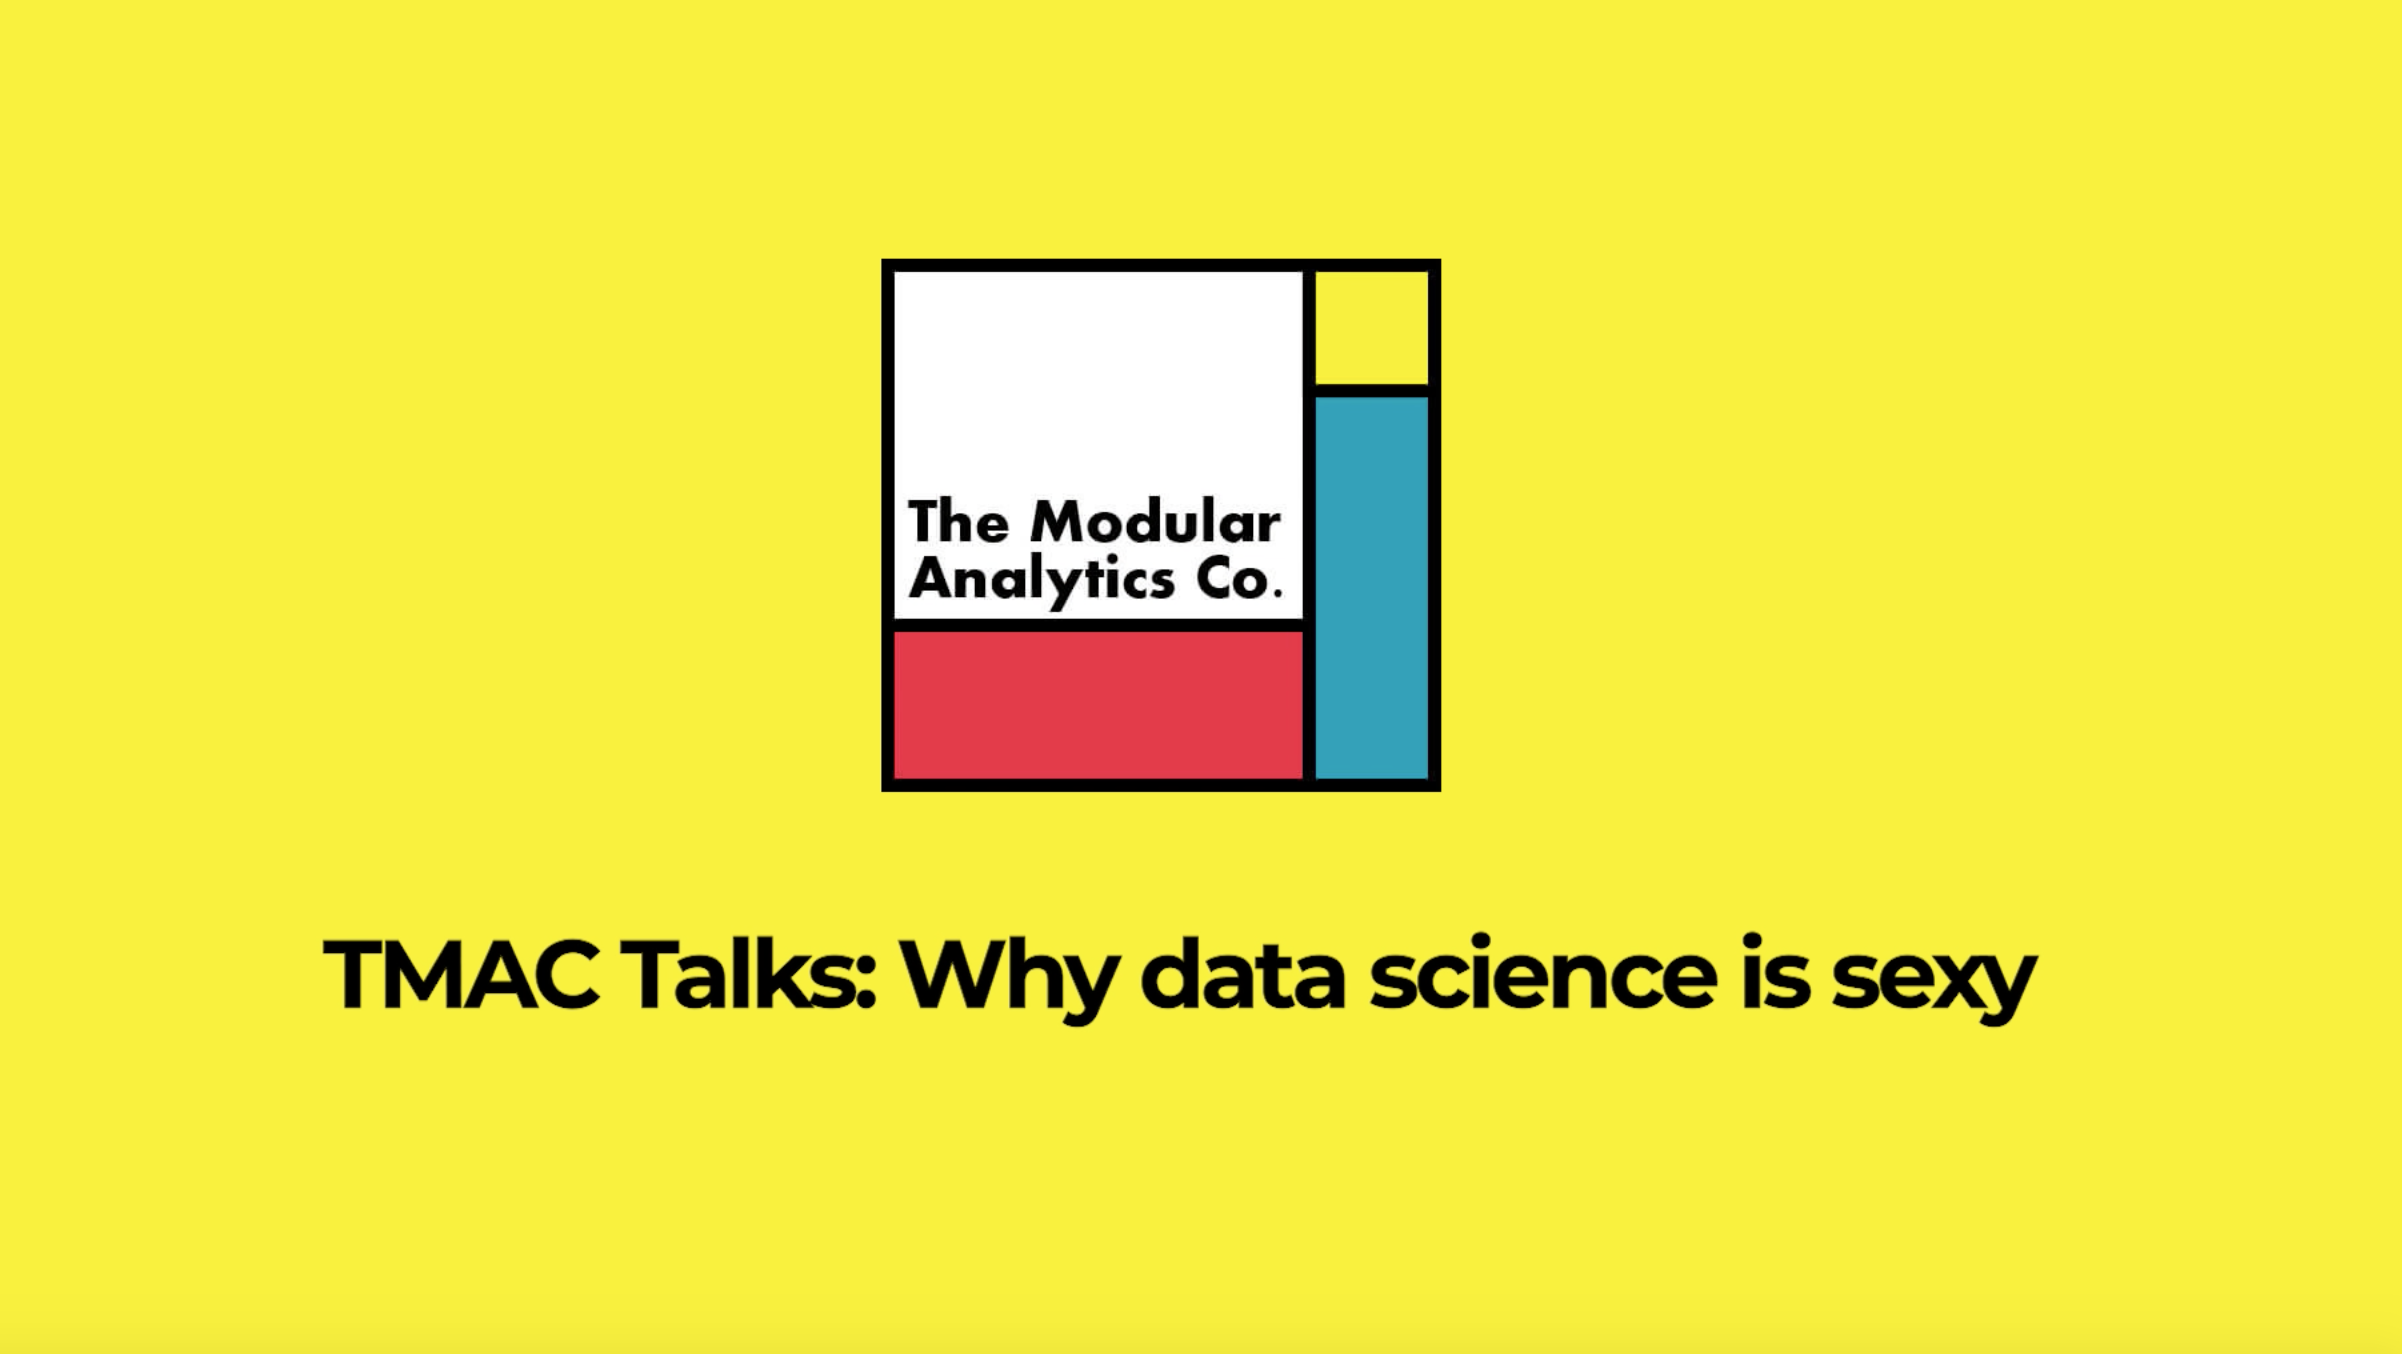 TMAC Talks: Why Data Science is sexy